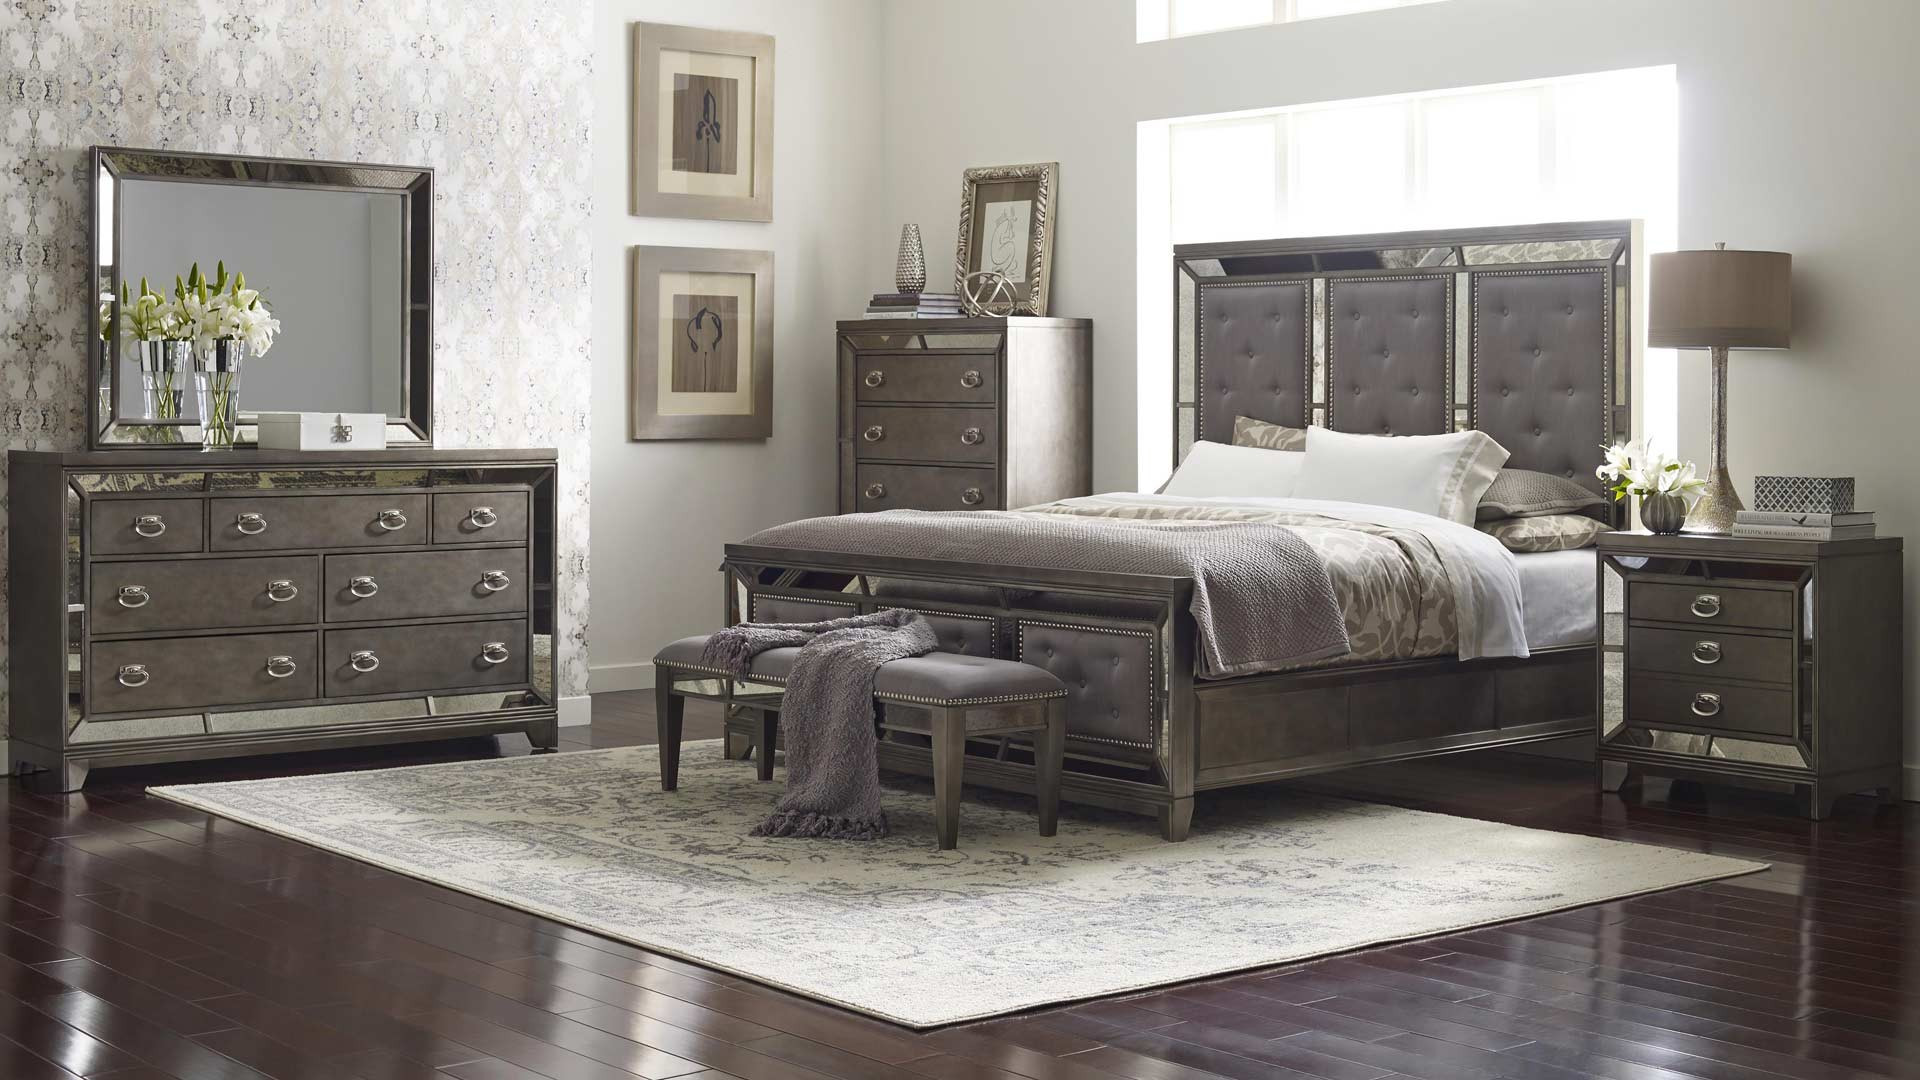 Best ideas about Master Bedroom Sets . Save or Pin st Furniture Store in Houston Now.